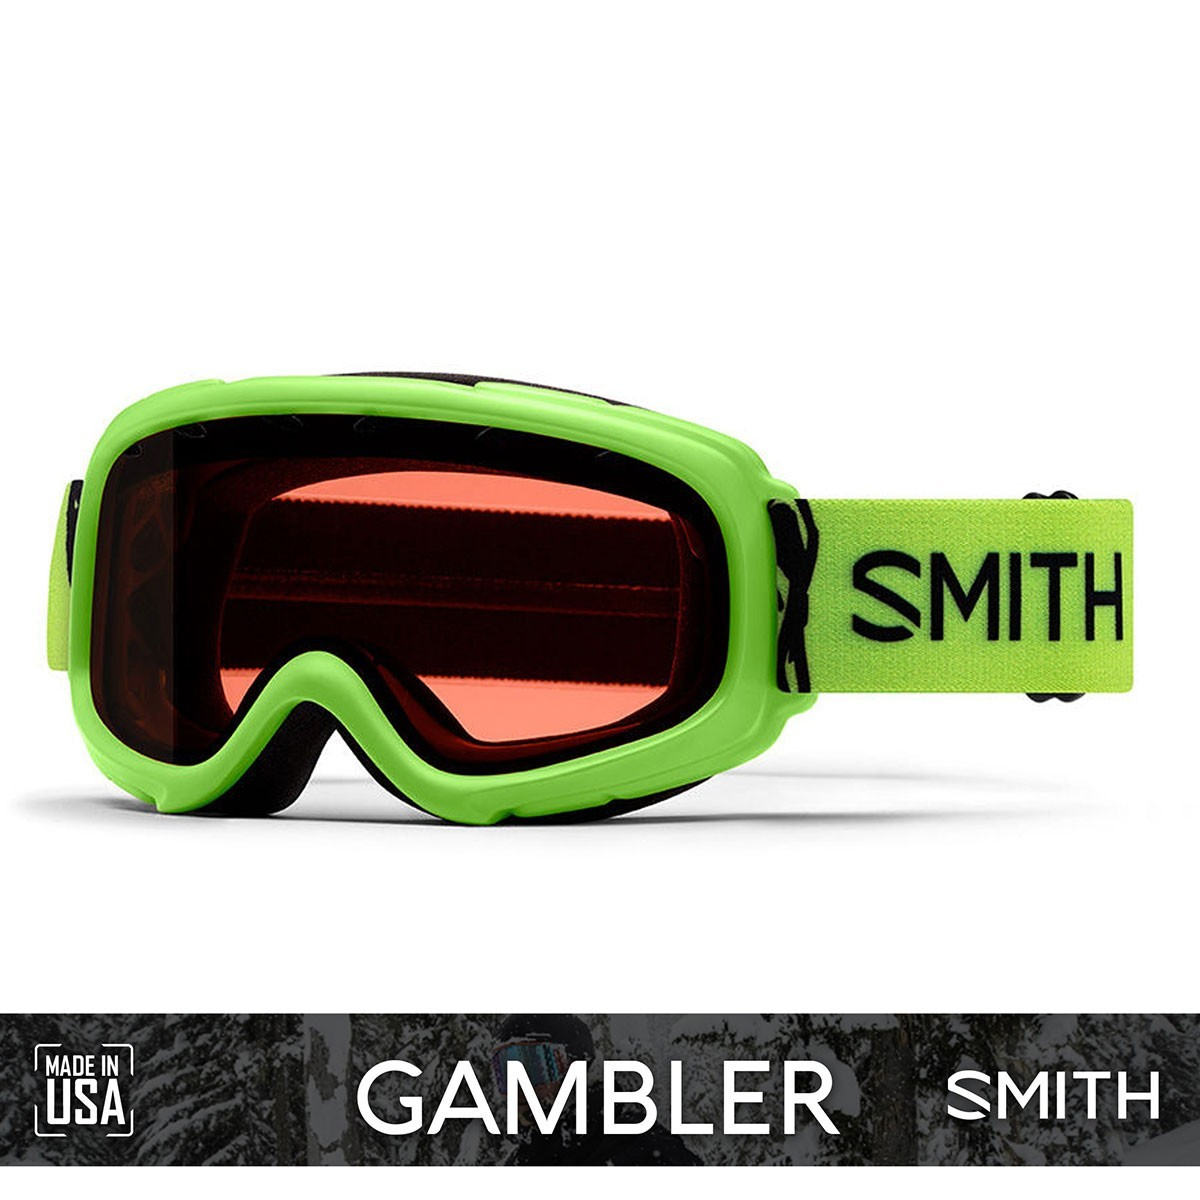 SMITH GAMBLER AIR Flash Faces | S2 RC36 ROSEC - Изображение - AQUAMATRIX